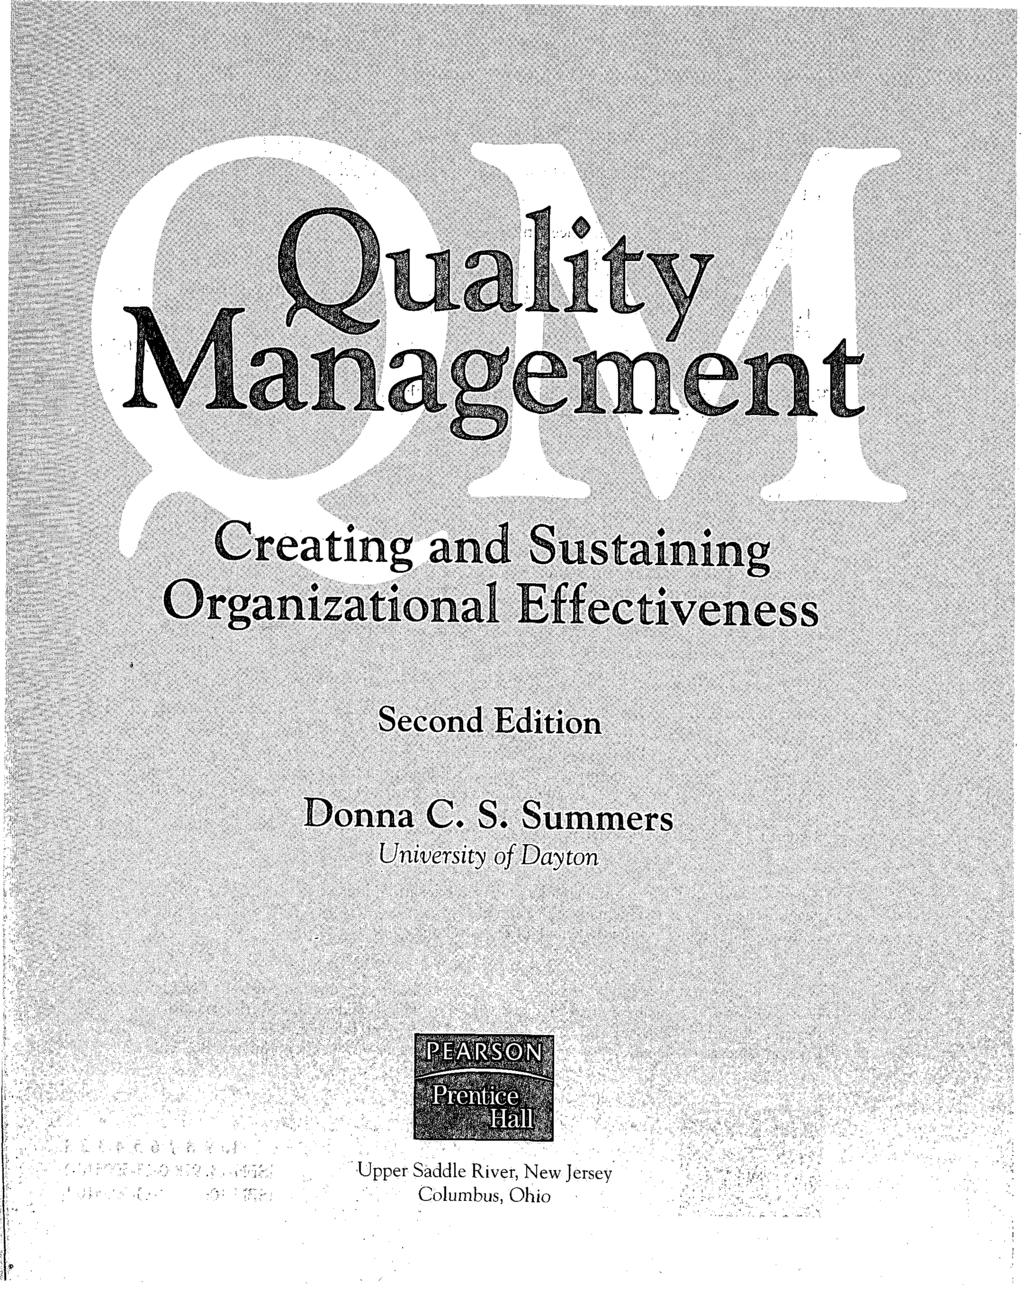 Organizational Effectiveness Second Edition